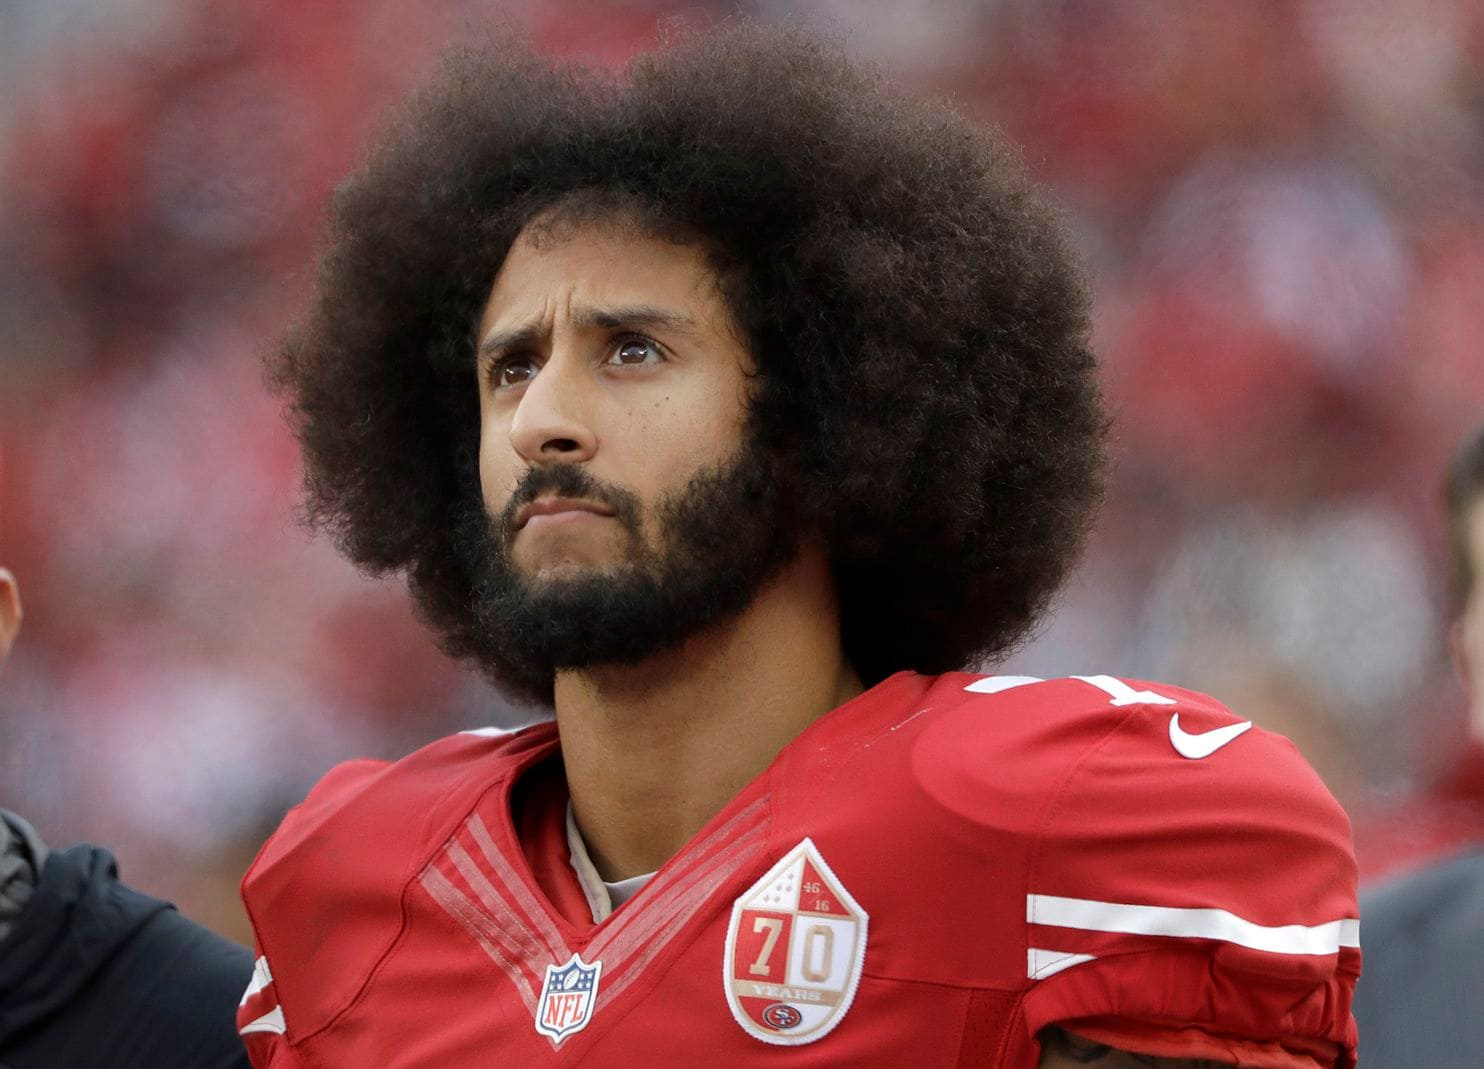 Colin Kaepernick Nike Commercial Wins Creative Arts Emmy